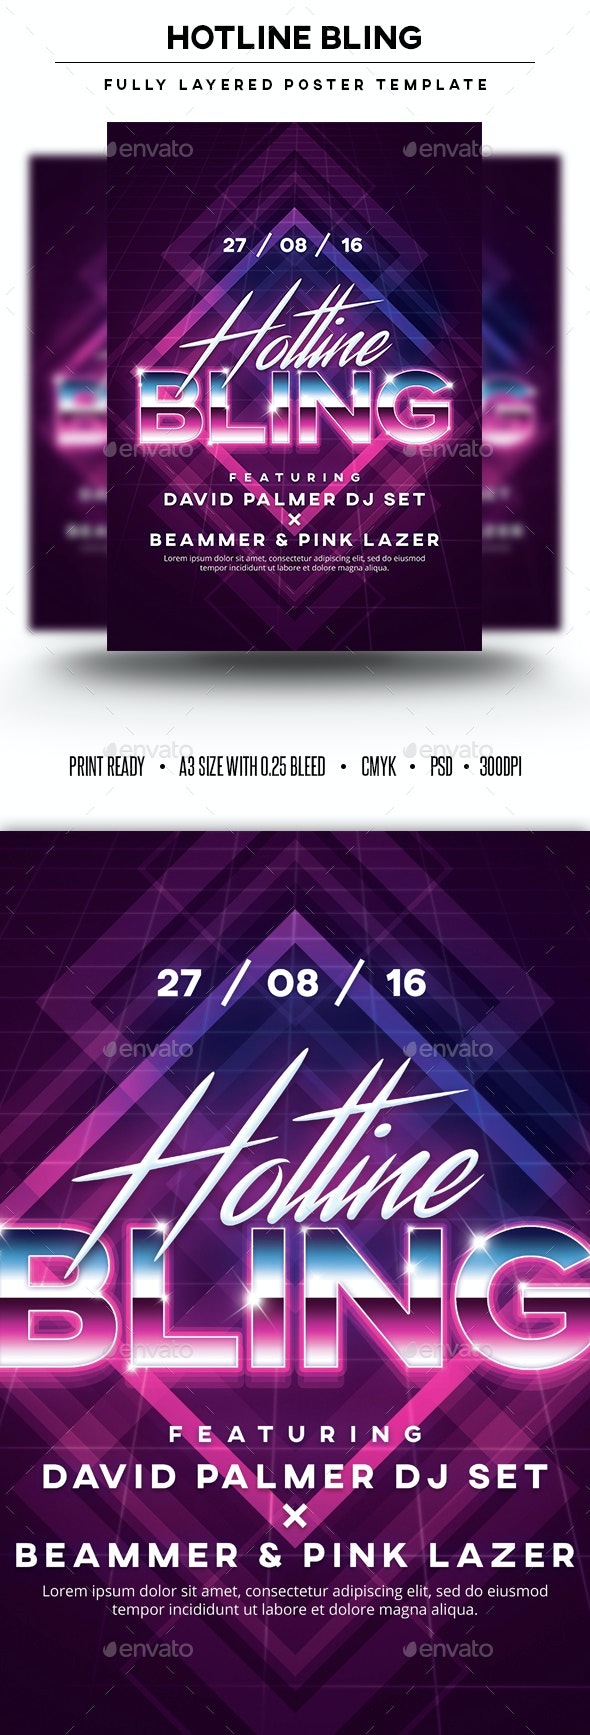 Hotline Bling Poster Template - Clubs & Parties Events